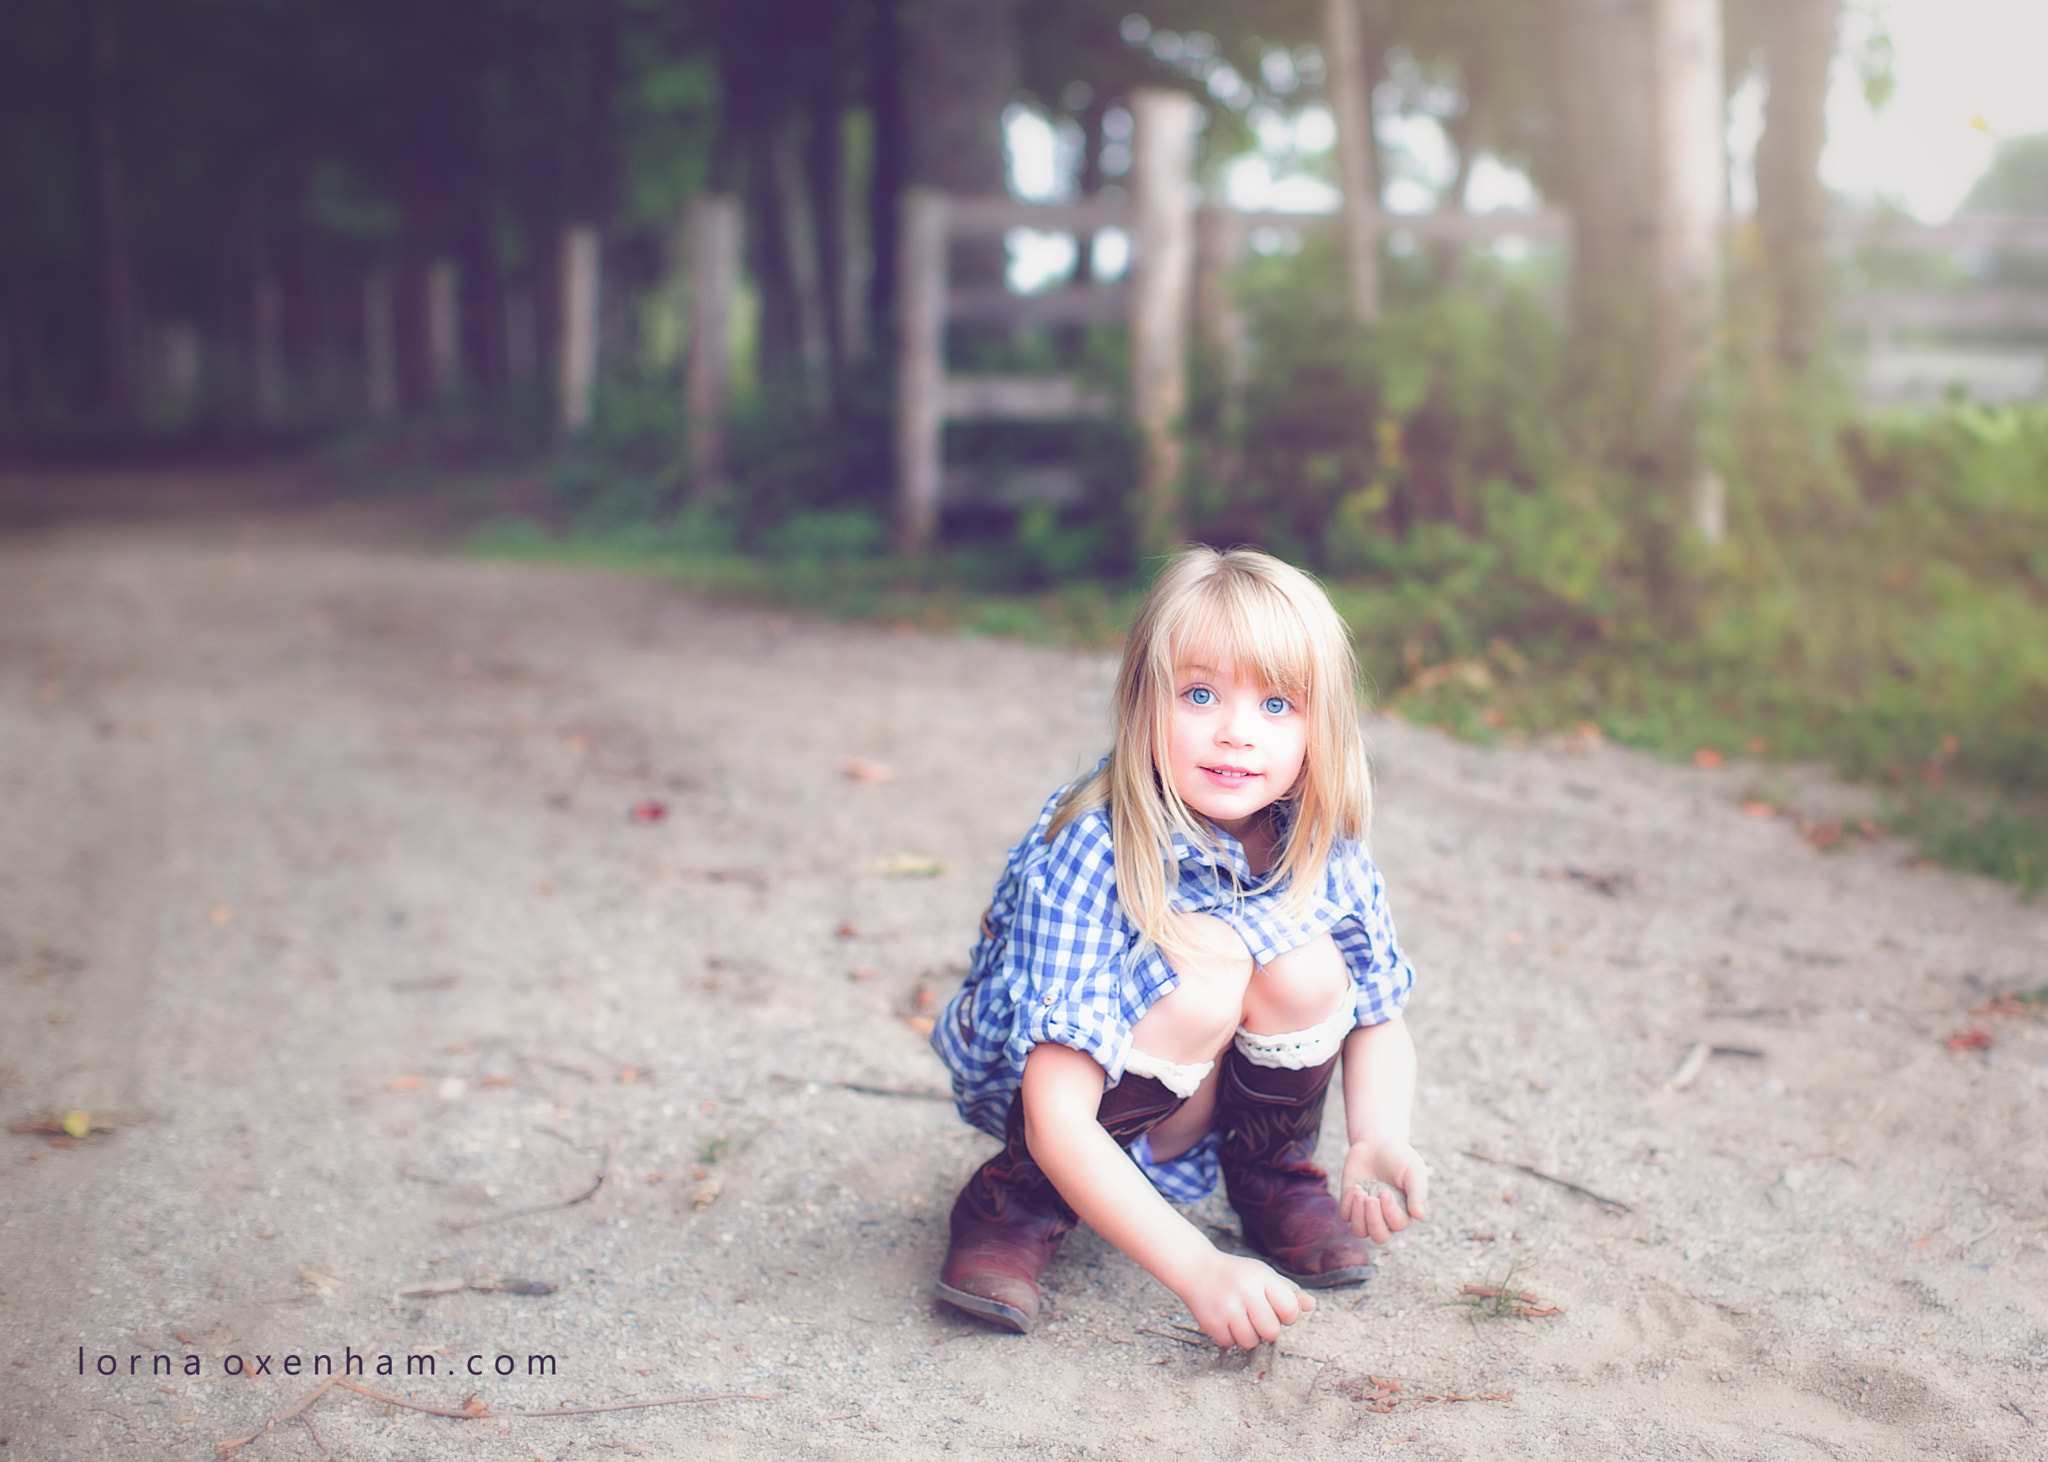 Photograph Who doesn't like playing in dirt? by Lorna Oxenham on 500px